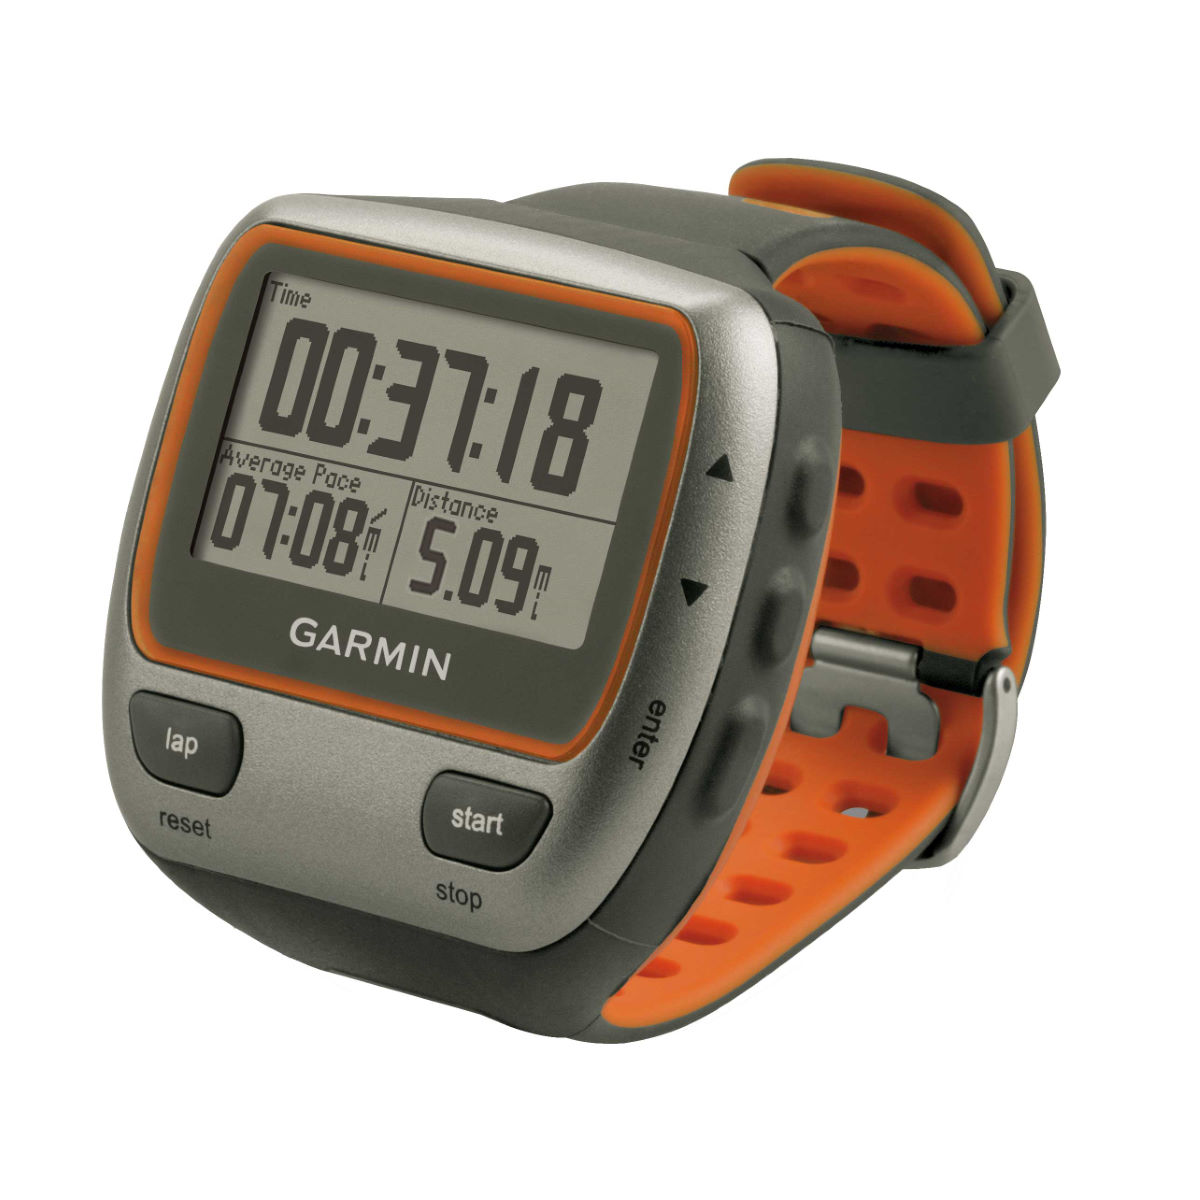 Garmin Forerunner 310XT GPS Sports Watch with HRM